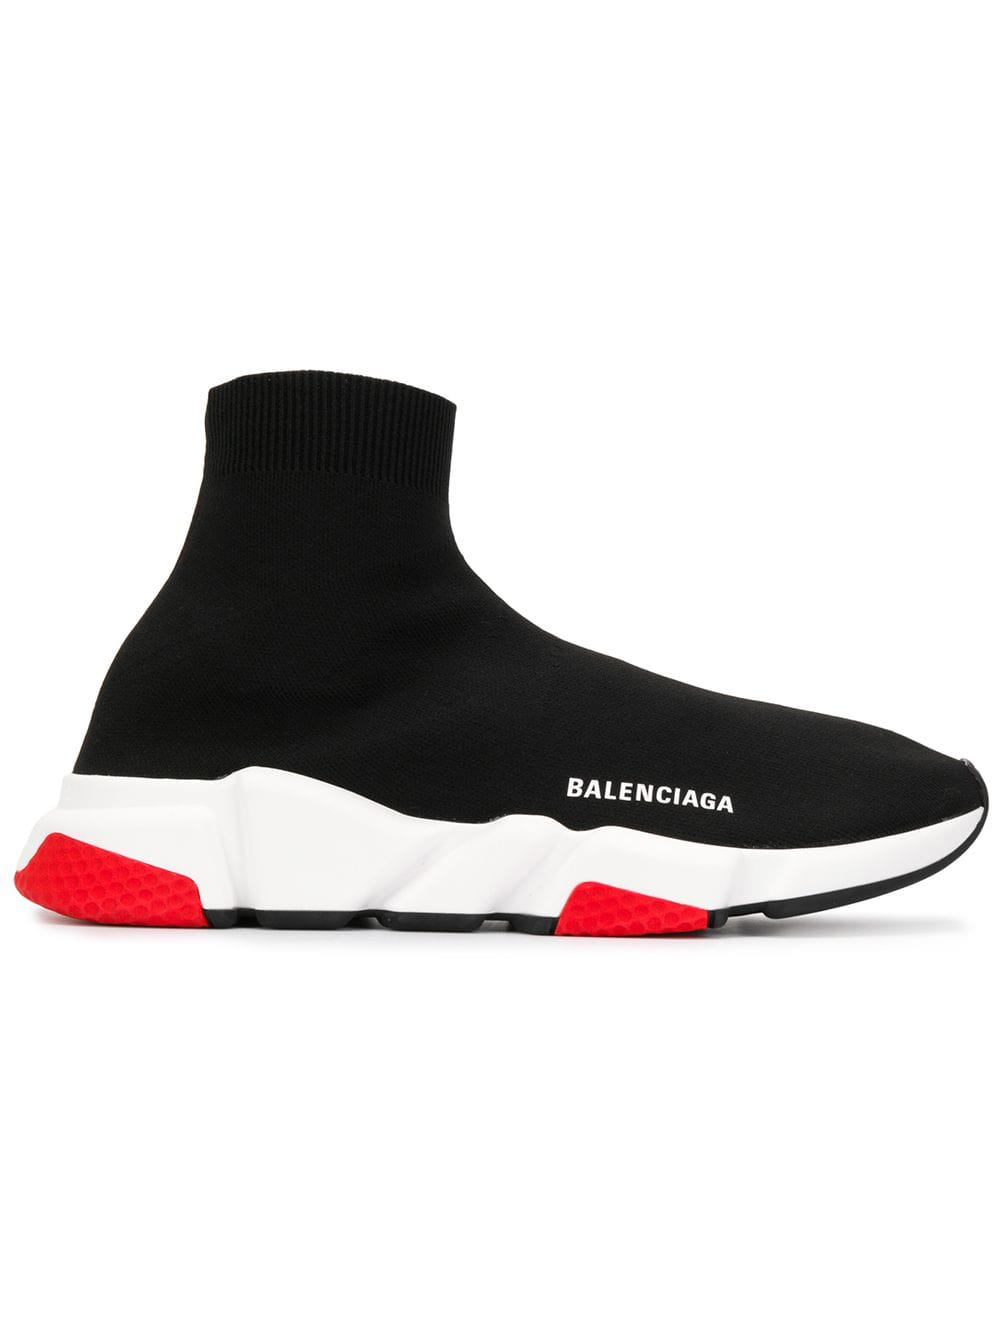 Speed trainers - 585€